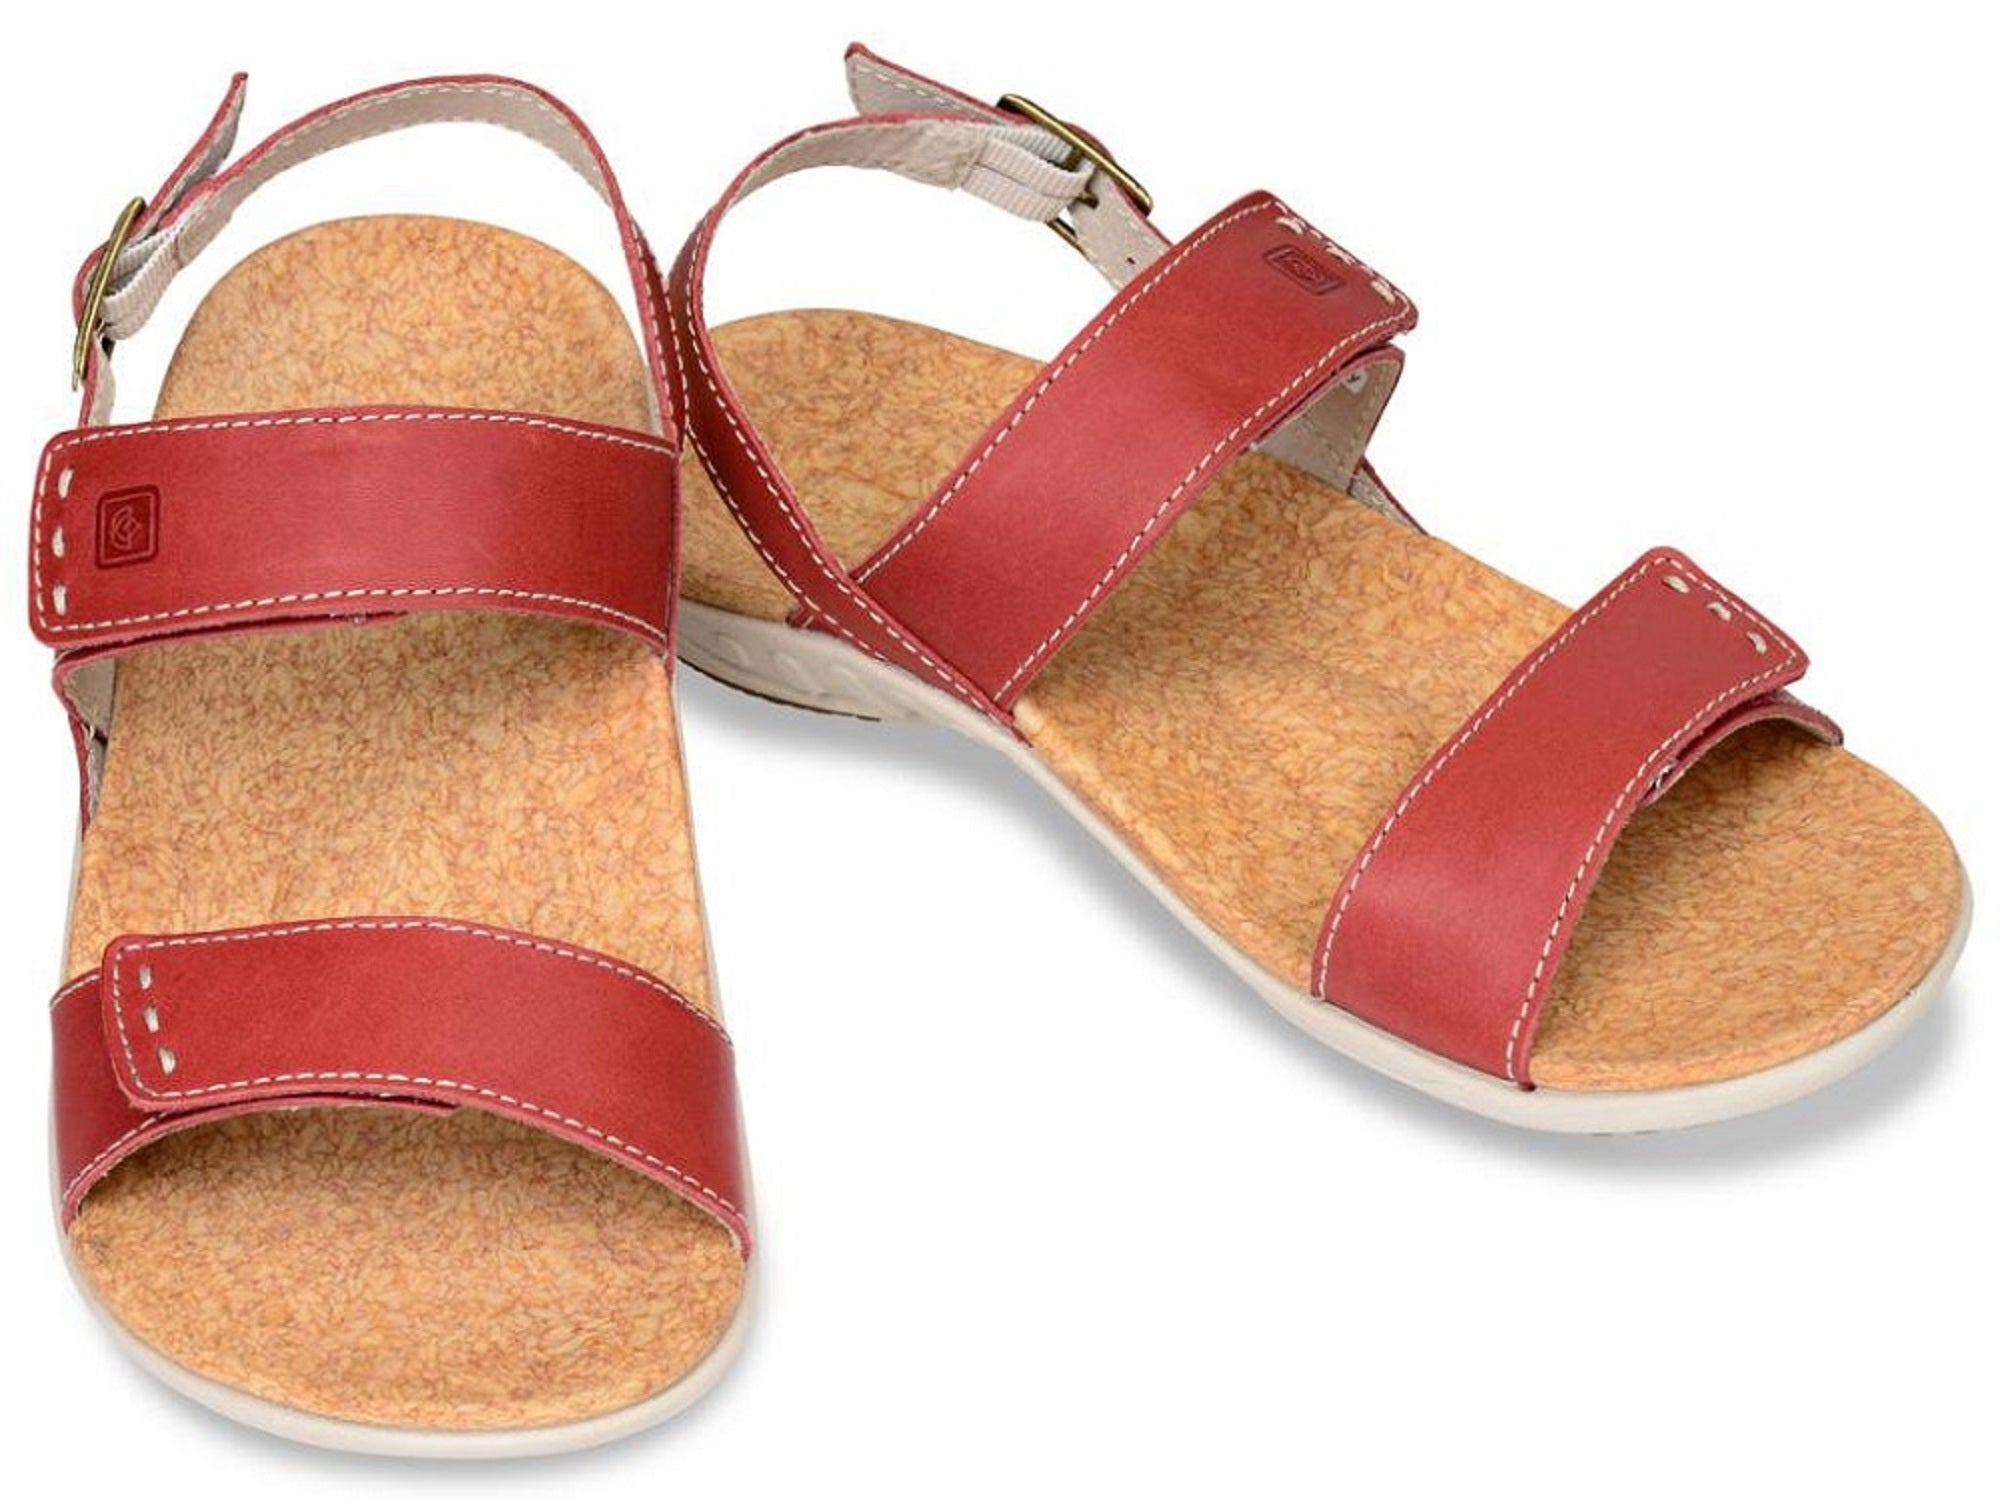 Spenco Alex Women's Strap Orthotic Sandals - Robin Red - Size 7